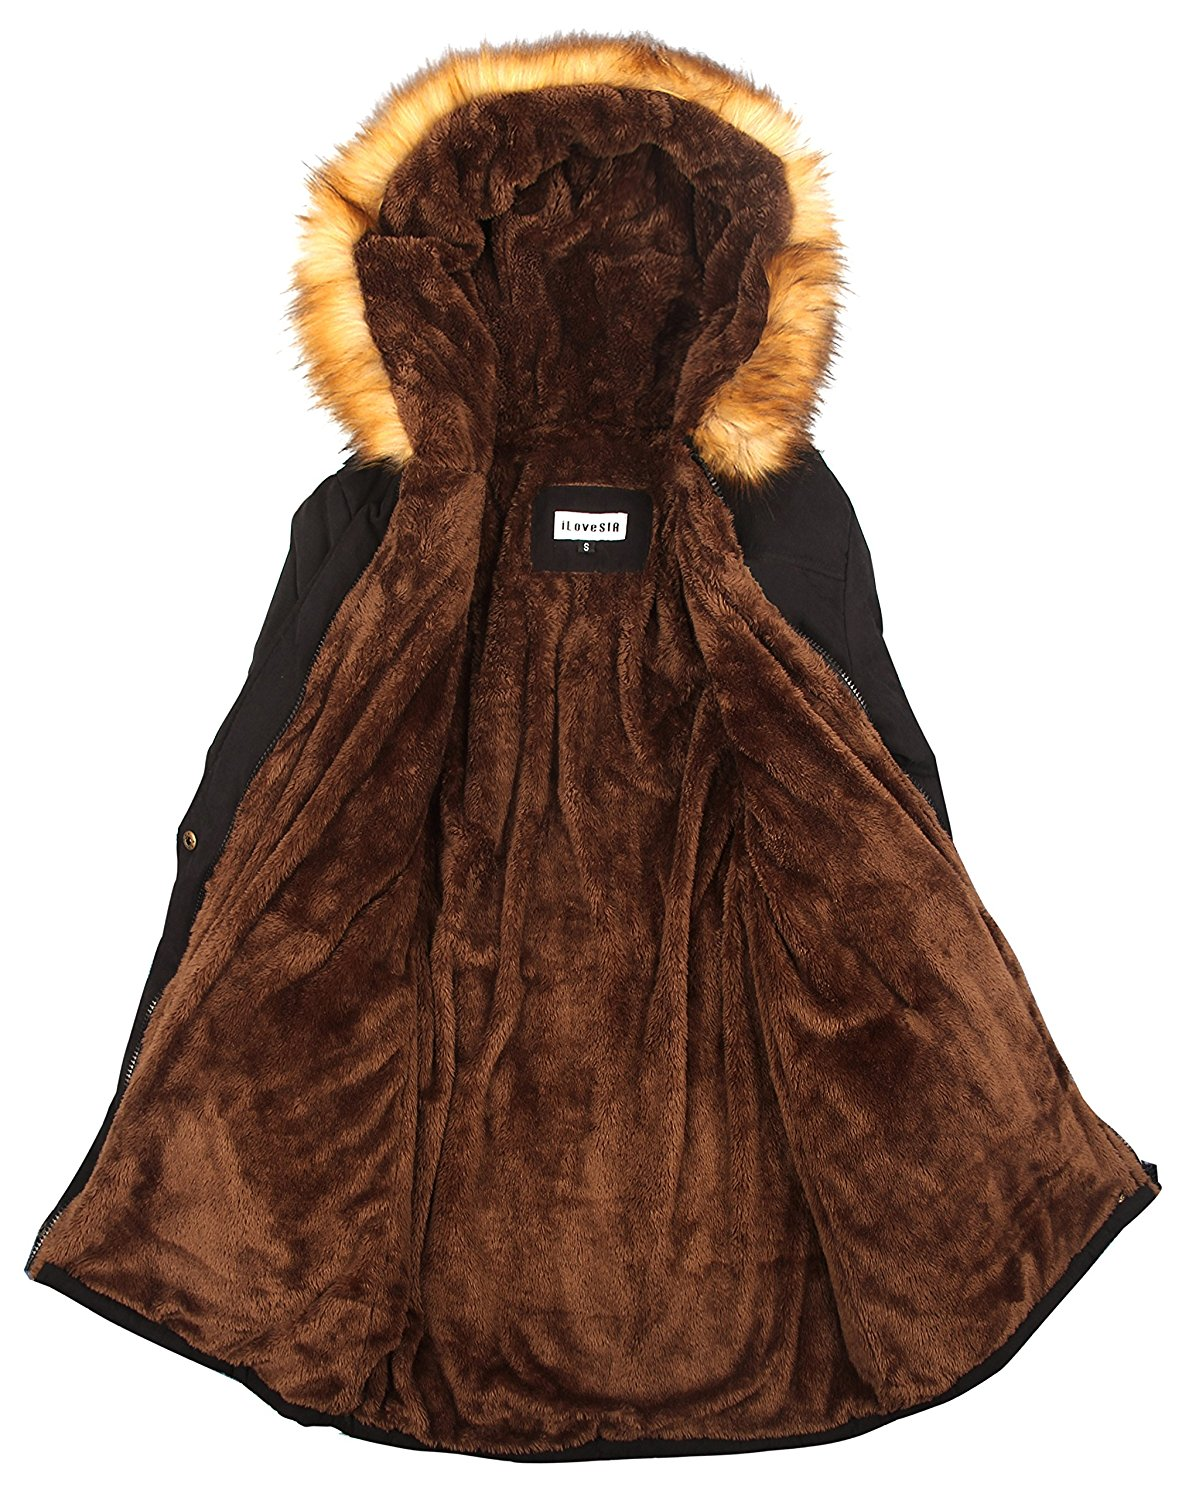 66f677abc1 ... iLoveSIA Womens Hooded Warm Coats Parkas with Faux Fur Jackets ...